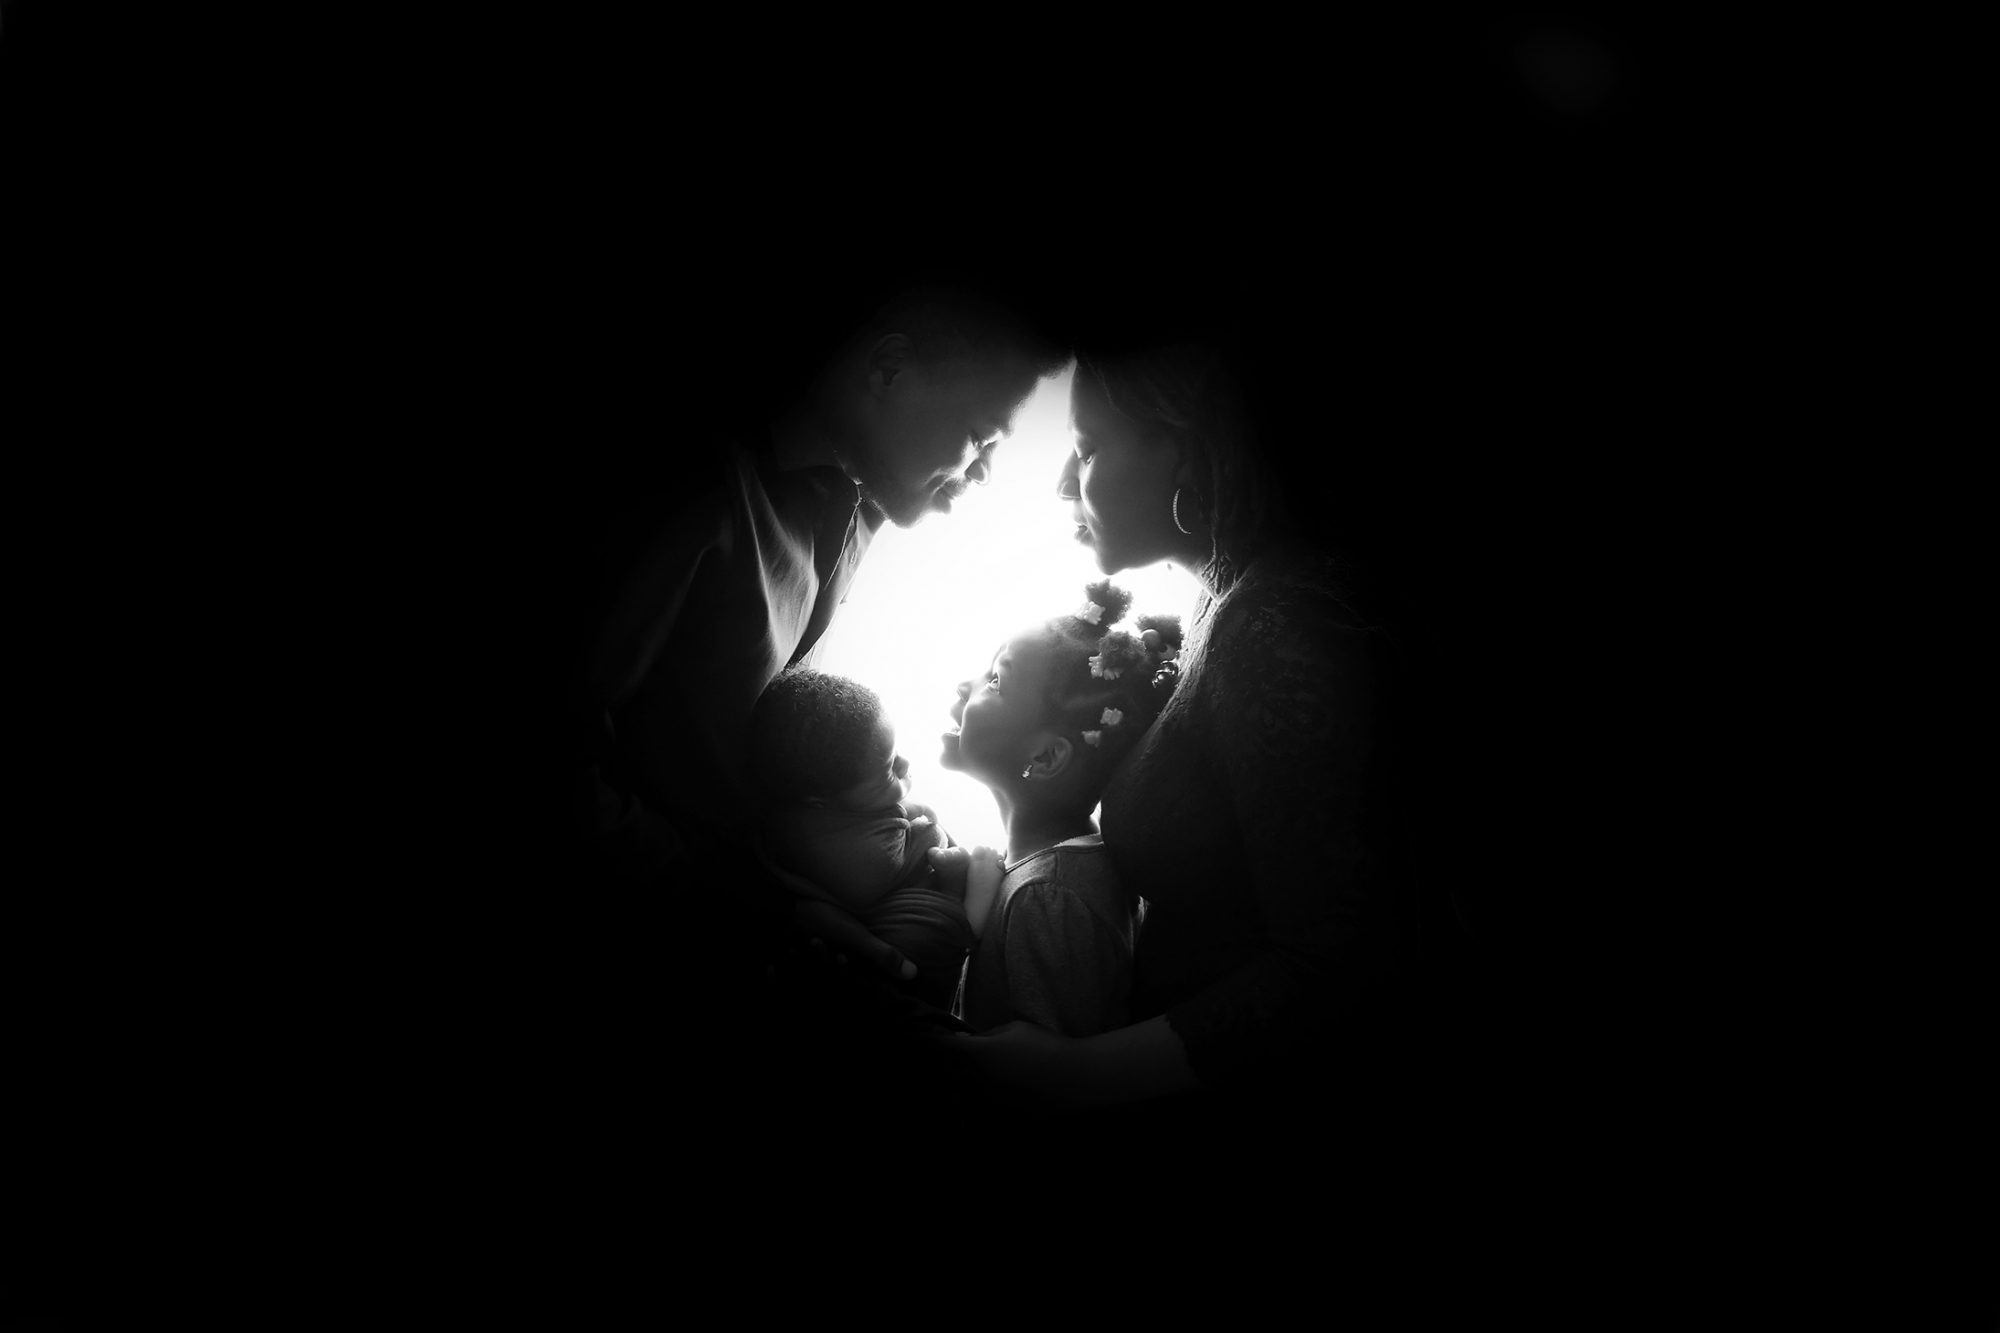 a silhouette of a nigerian mother, father, daughter and newborn baby boy